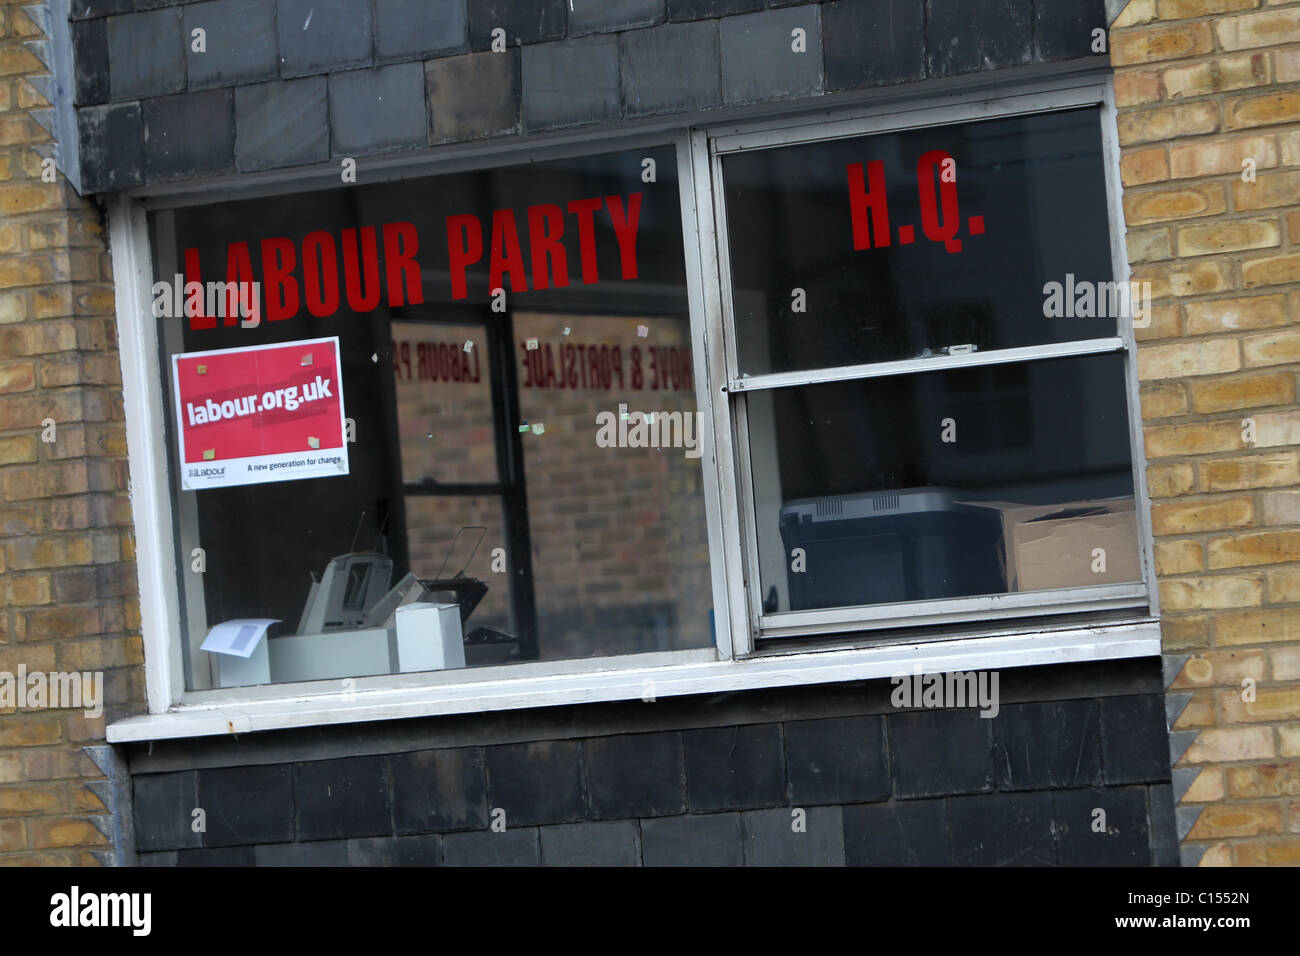 Labour Party HQ window, Hove, East Sussex, UK. - Stock Image